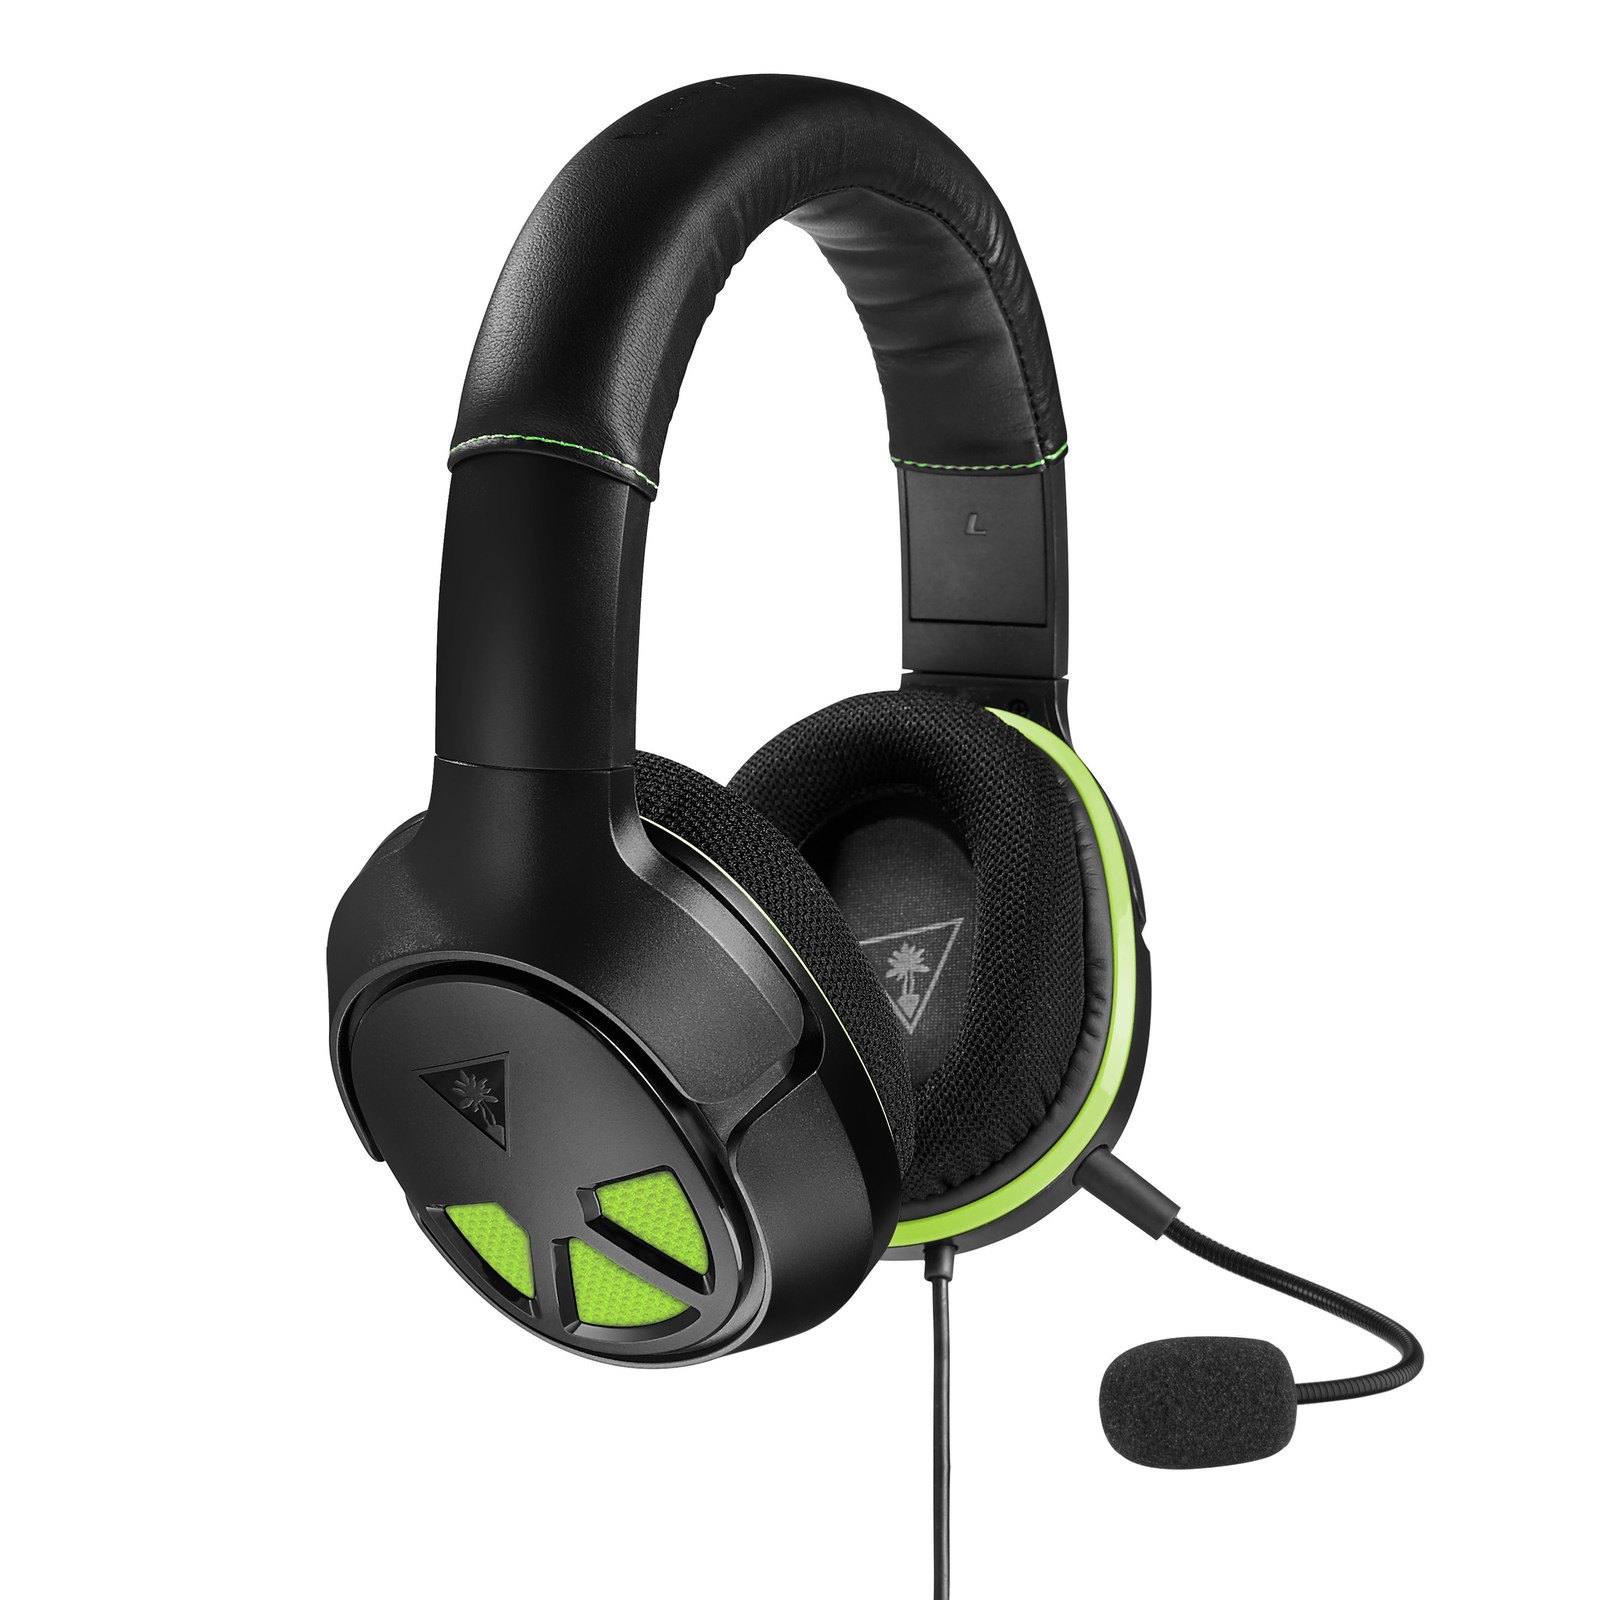 4b05f2264a2 Additionally, last month Turtle Beach redefined what gamers should expect  from a chat headset with the all-new RECON CHAT for Xbox One and PS4, ...